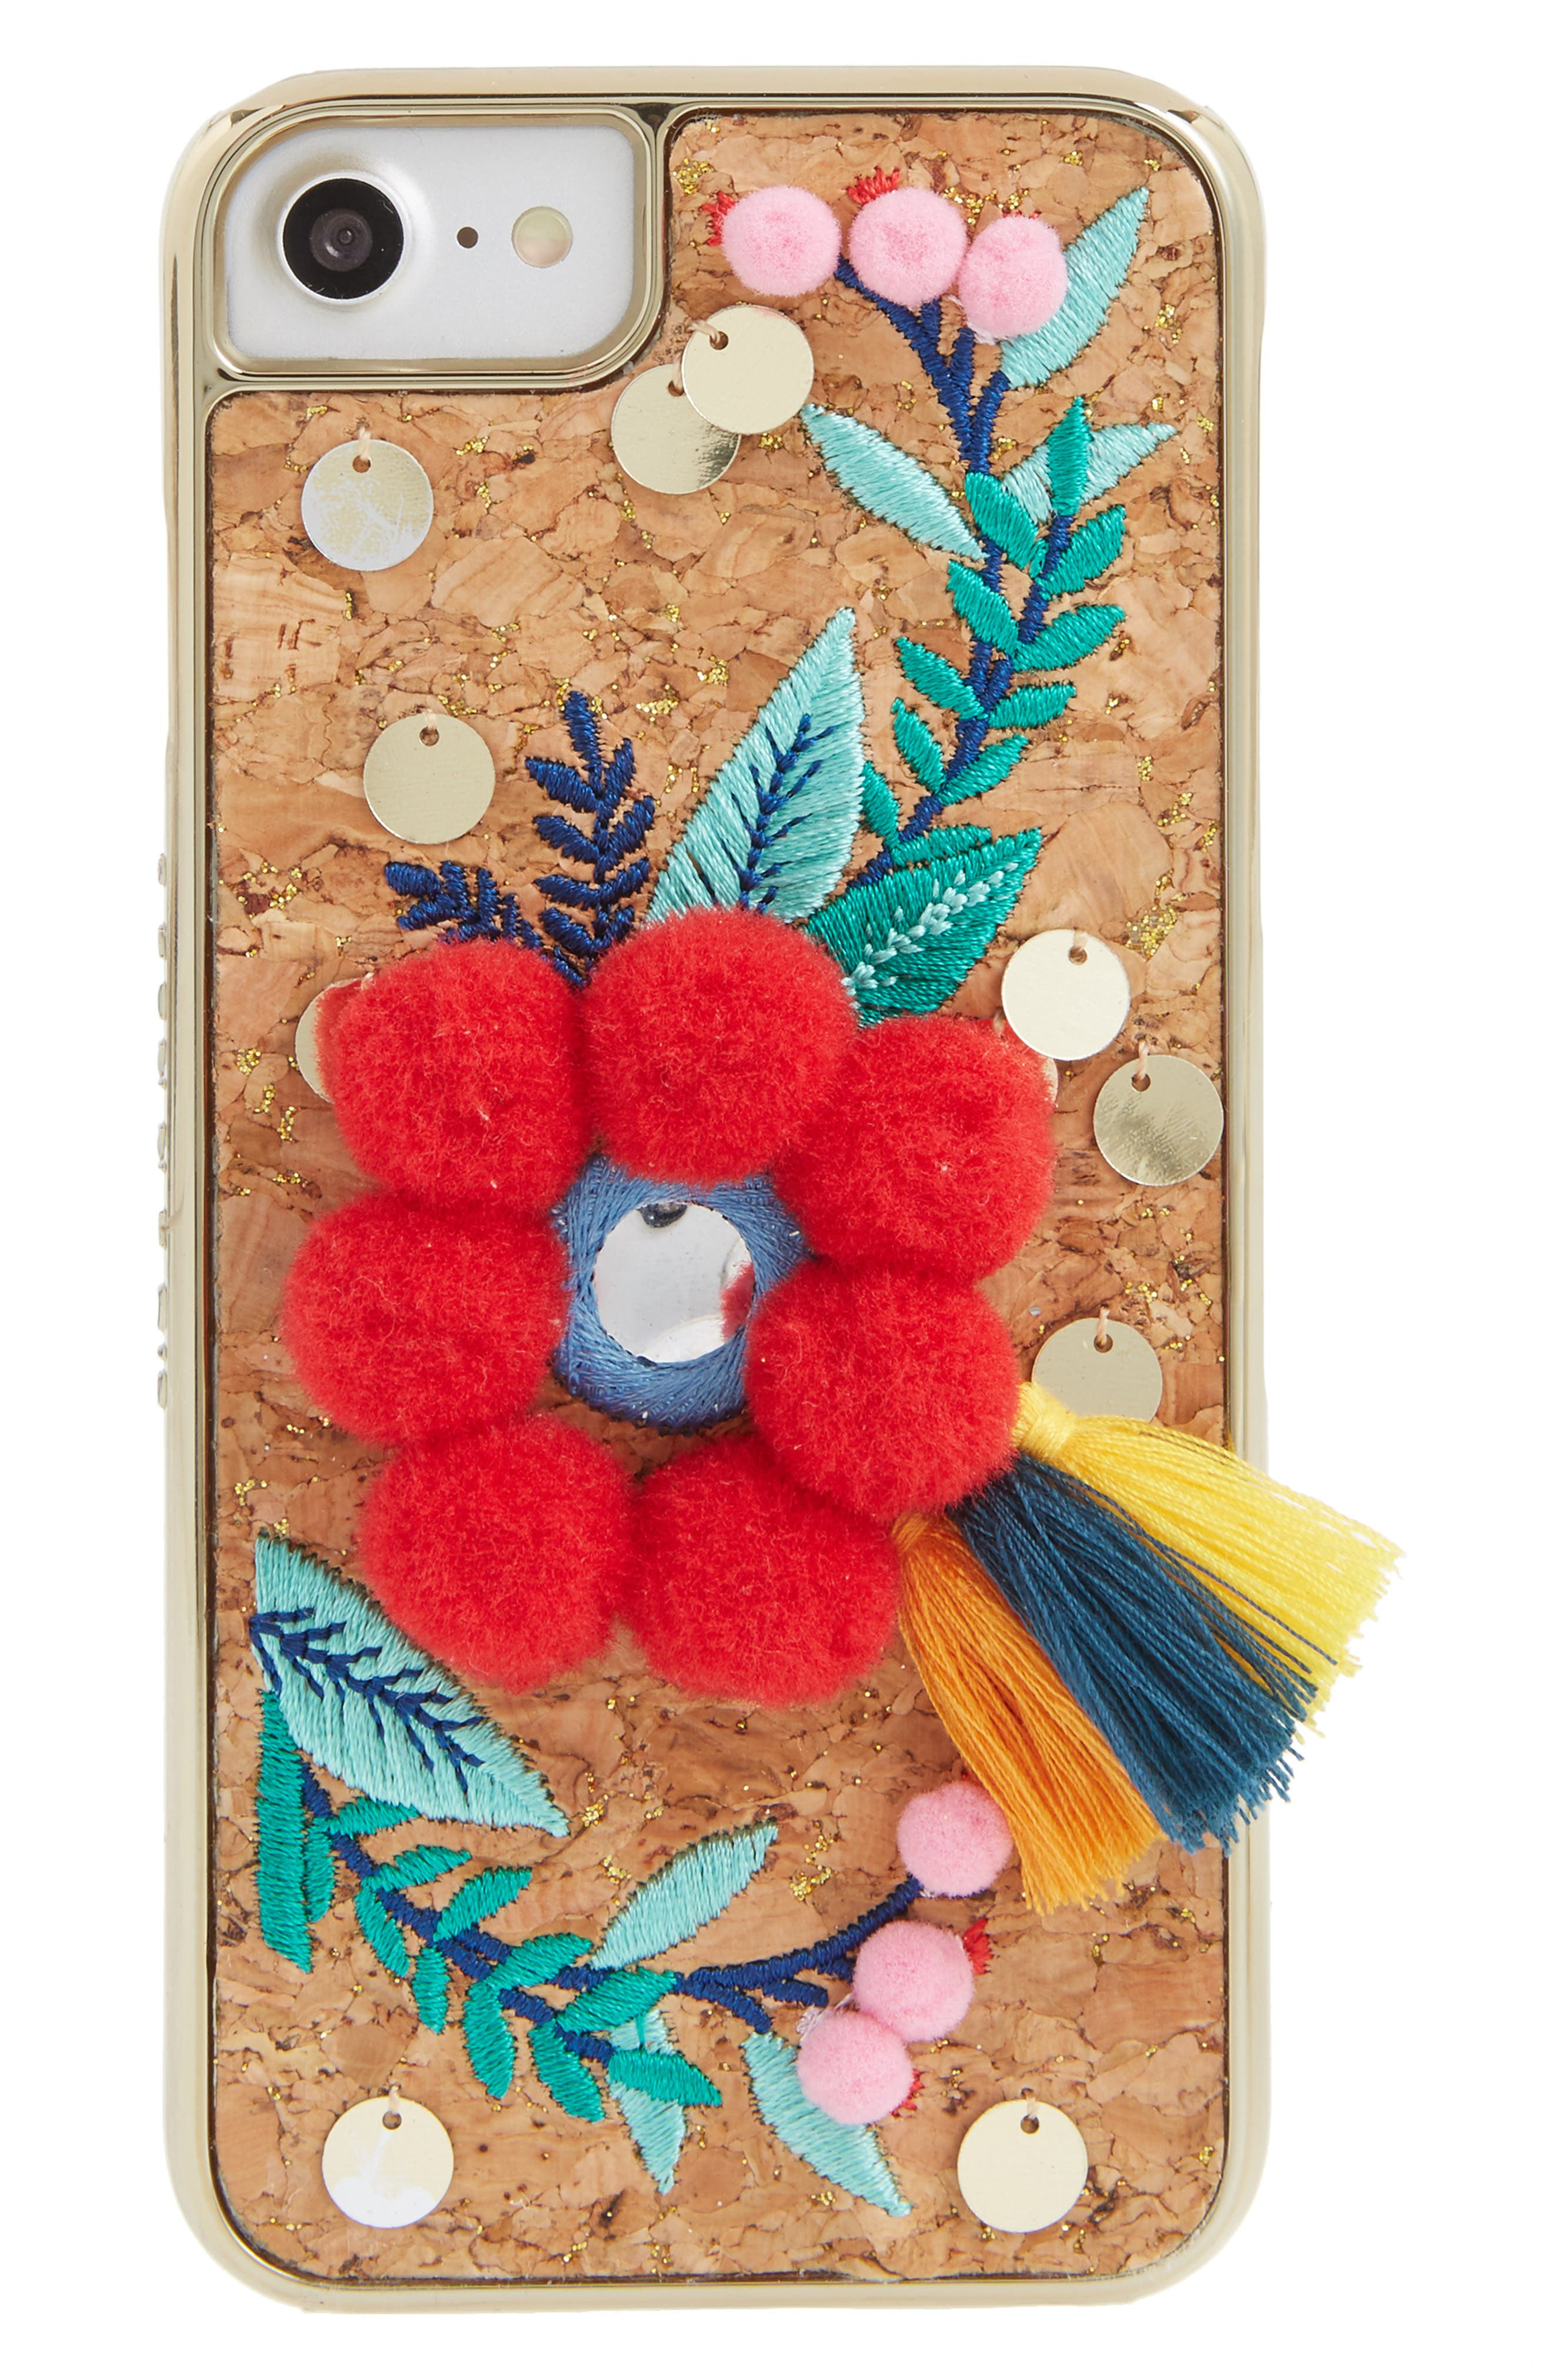 SKINNYDIP Scandi Pom-Embellished iPhone 6/7 & 6/7 Plus Case